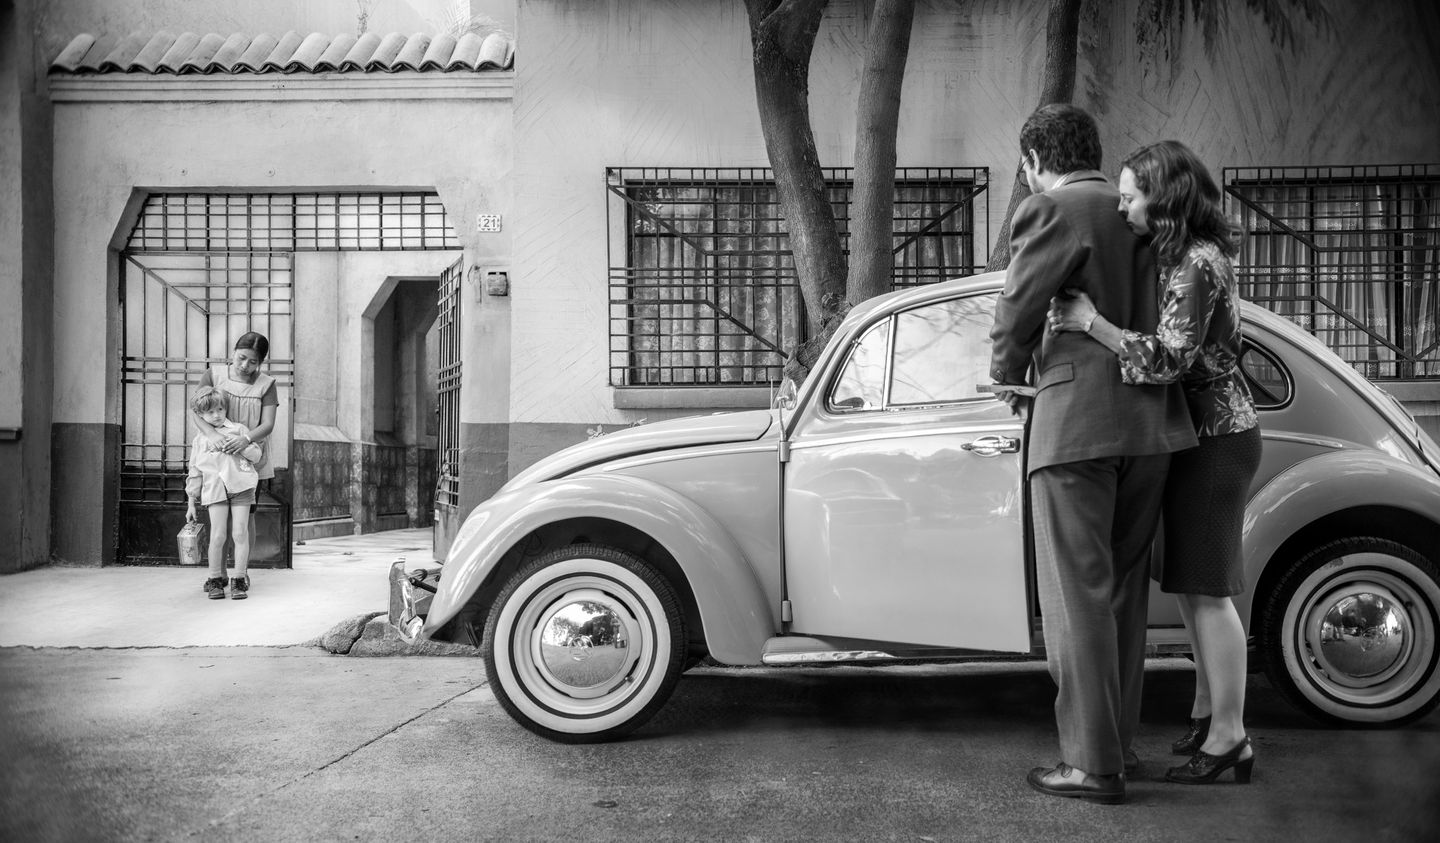 """""""Roma"""" has fomented the darkest impulses within Mexico. And much of this has been missed or ignored by the American media."""